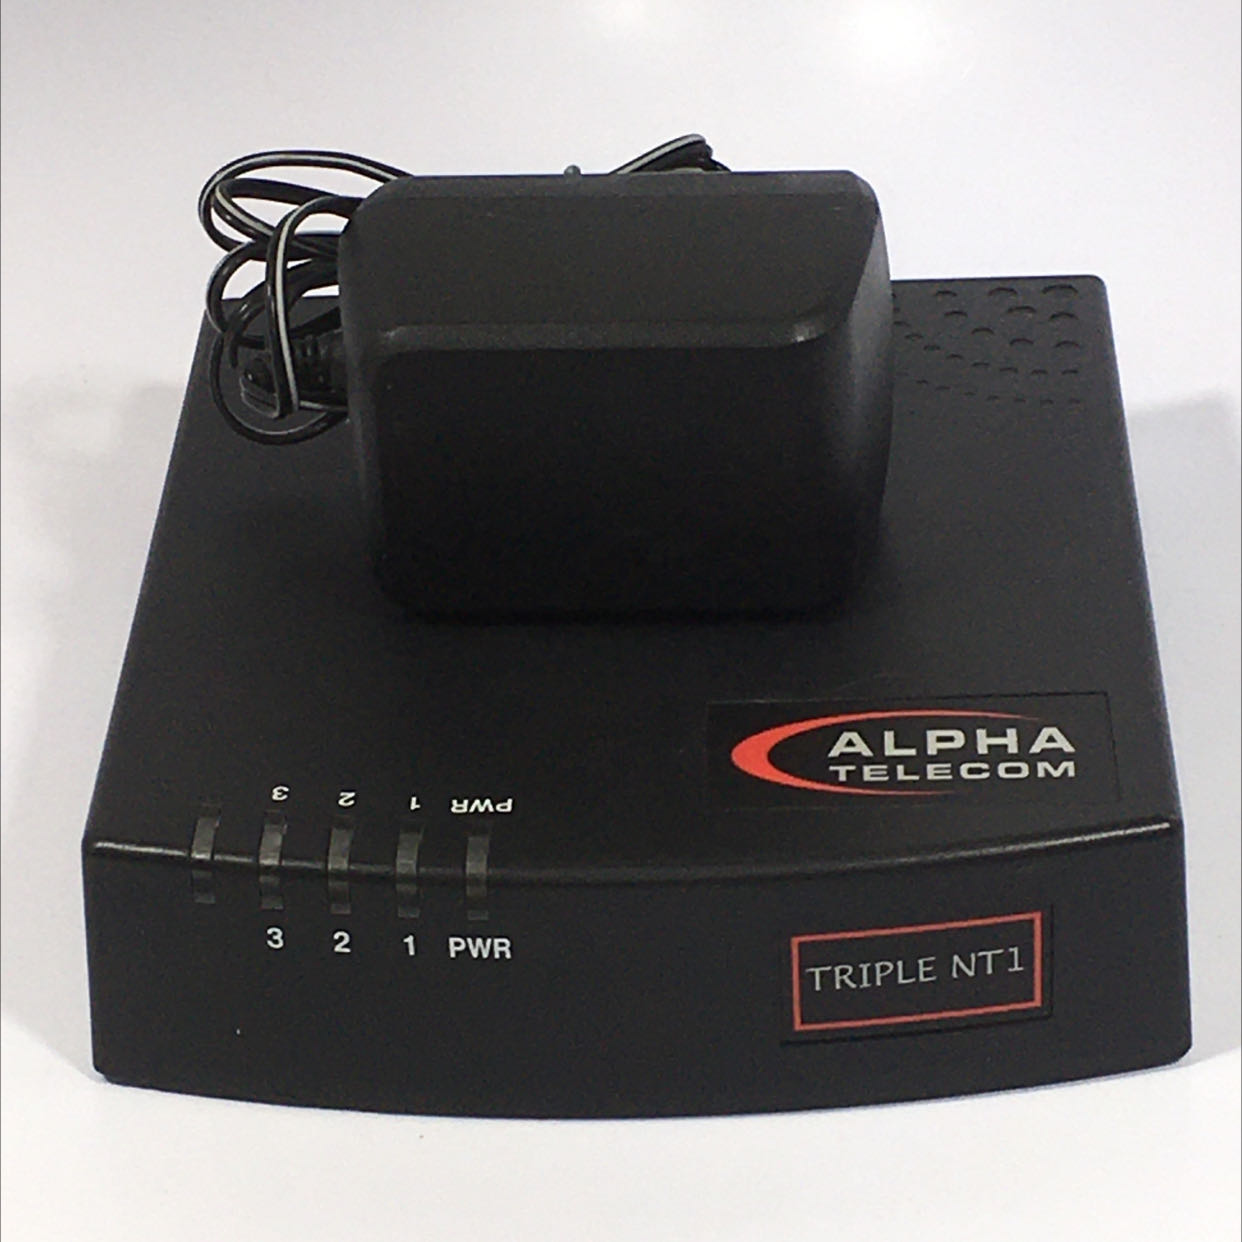 Alpha Telecom Quad/Triple NT1 Network Termination with Adapter